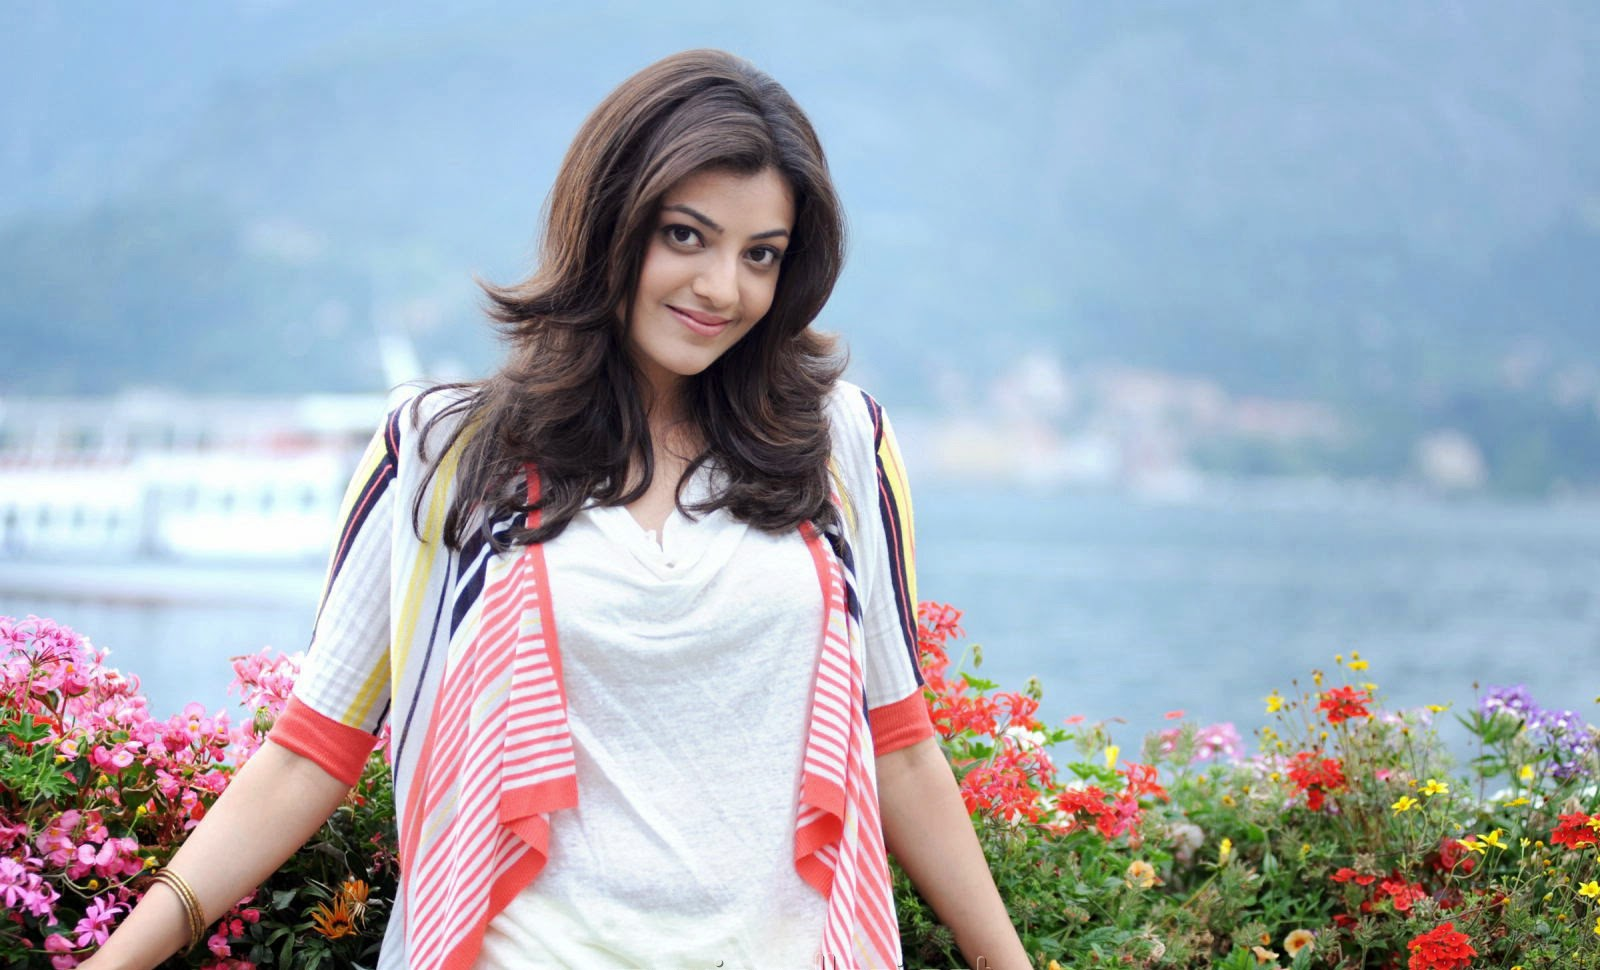 kajal agrawal wallpaper download